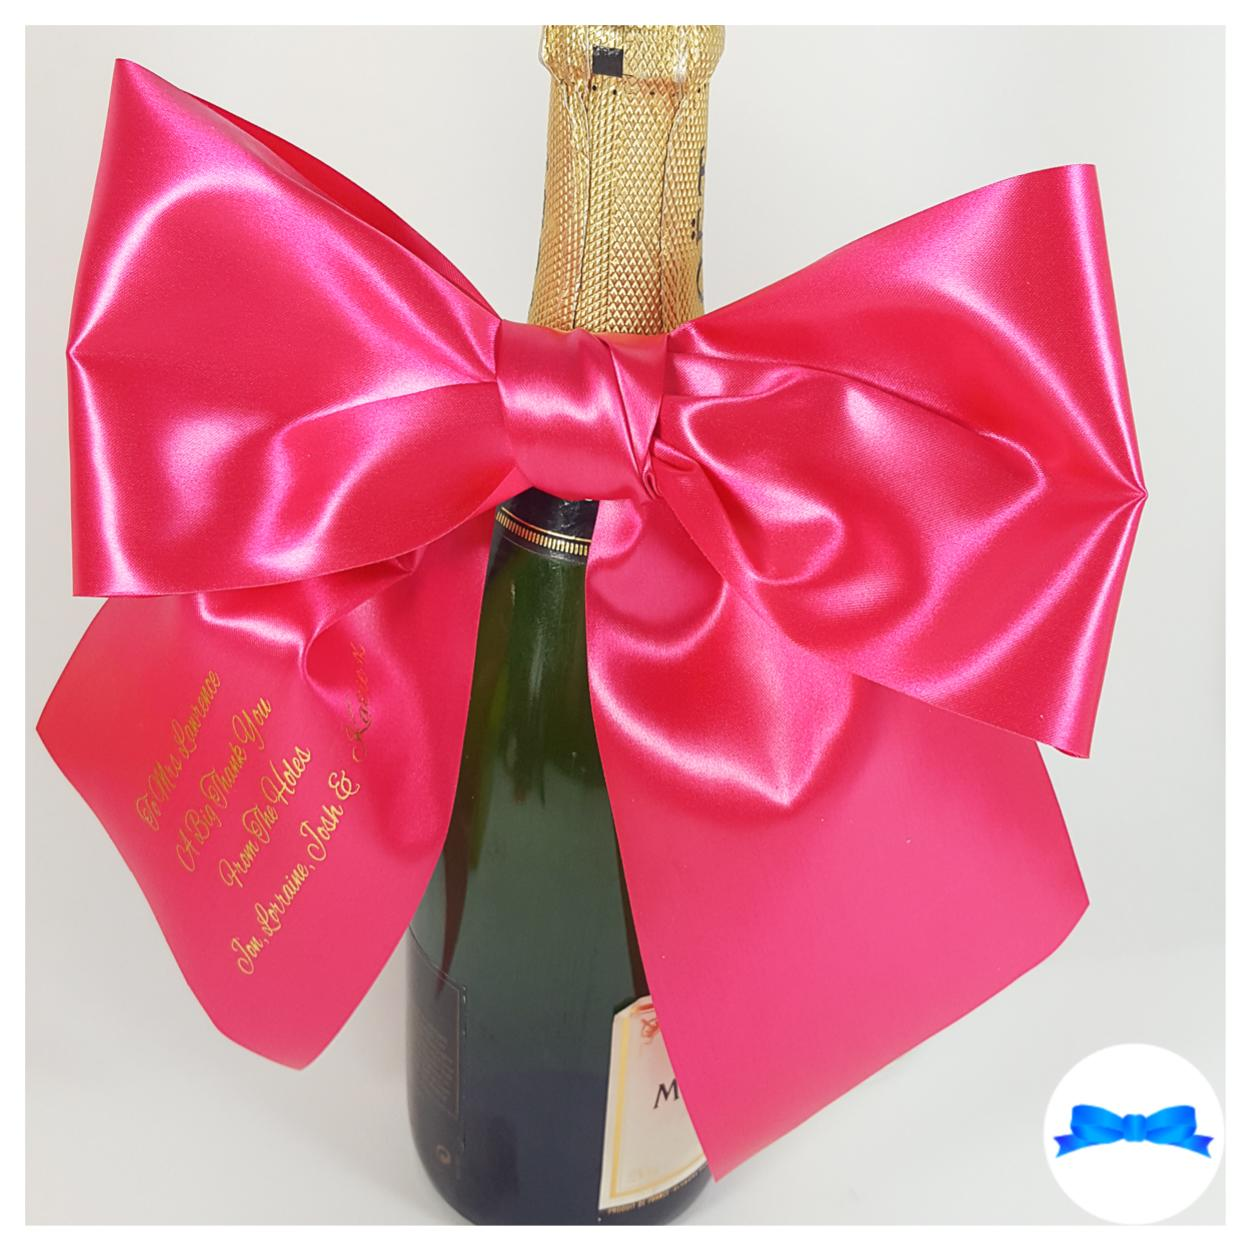 Large fuchsia pink and gold print personalised gift bow on bottle